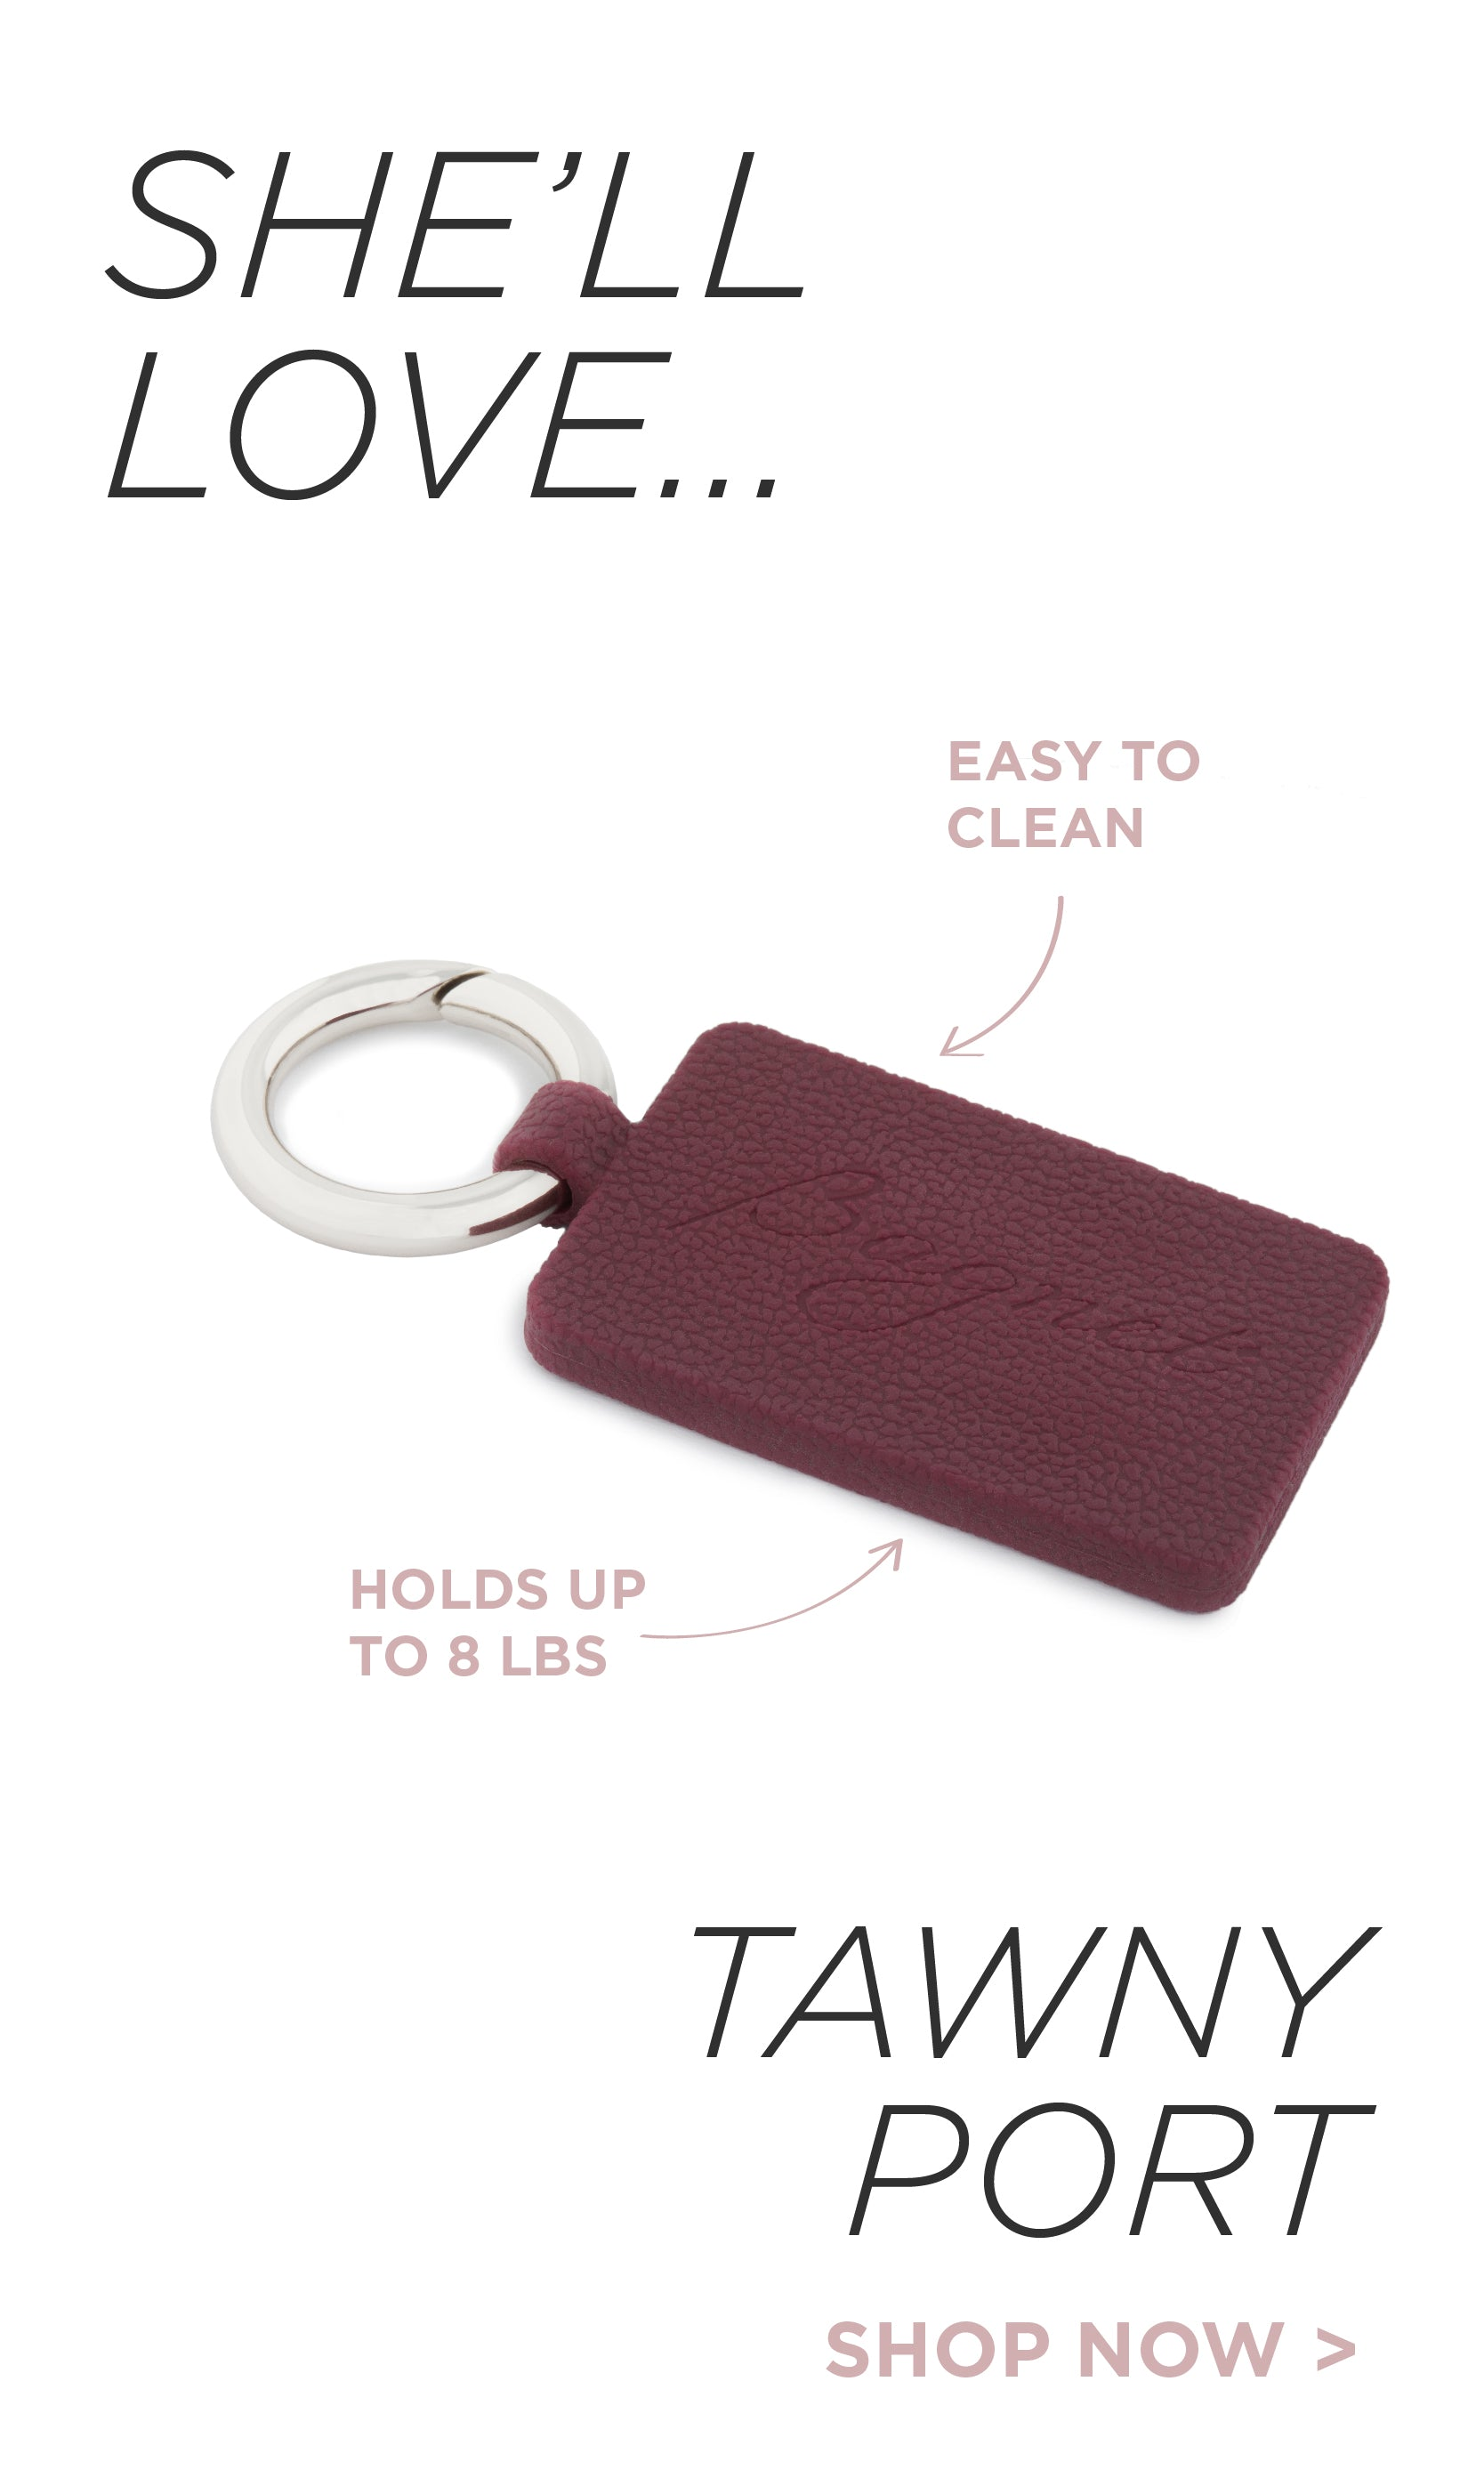 She'll Love the Tawny Port Bagnet. Easy to clean, this sport bagnet holds up 8 pounds.